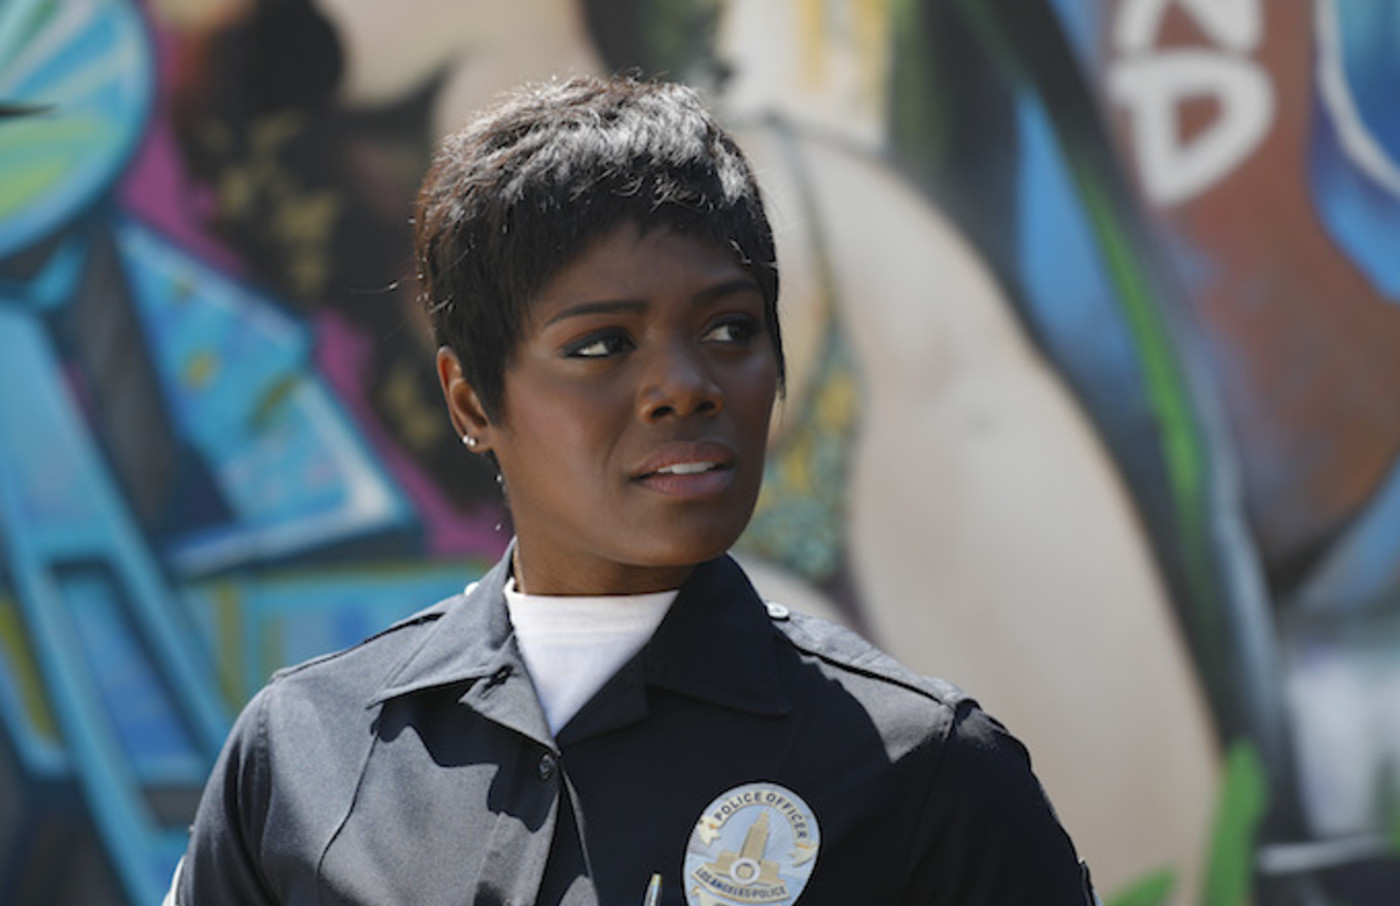 Afton Williamson filming 'The Rookie.'